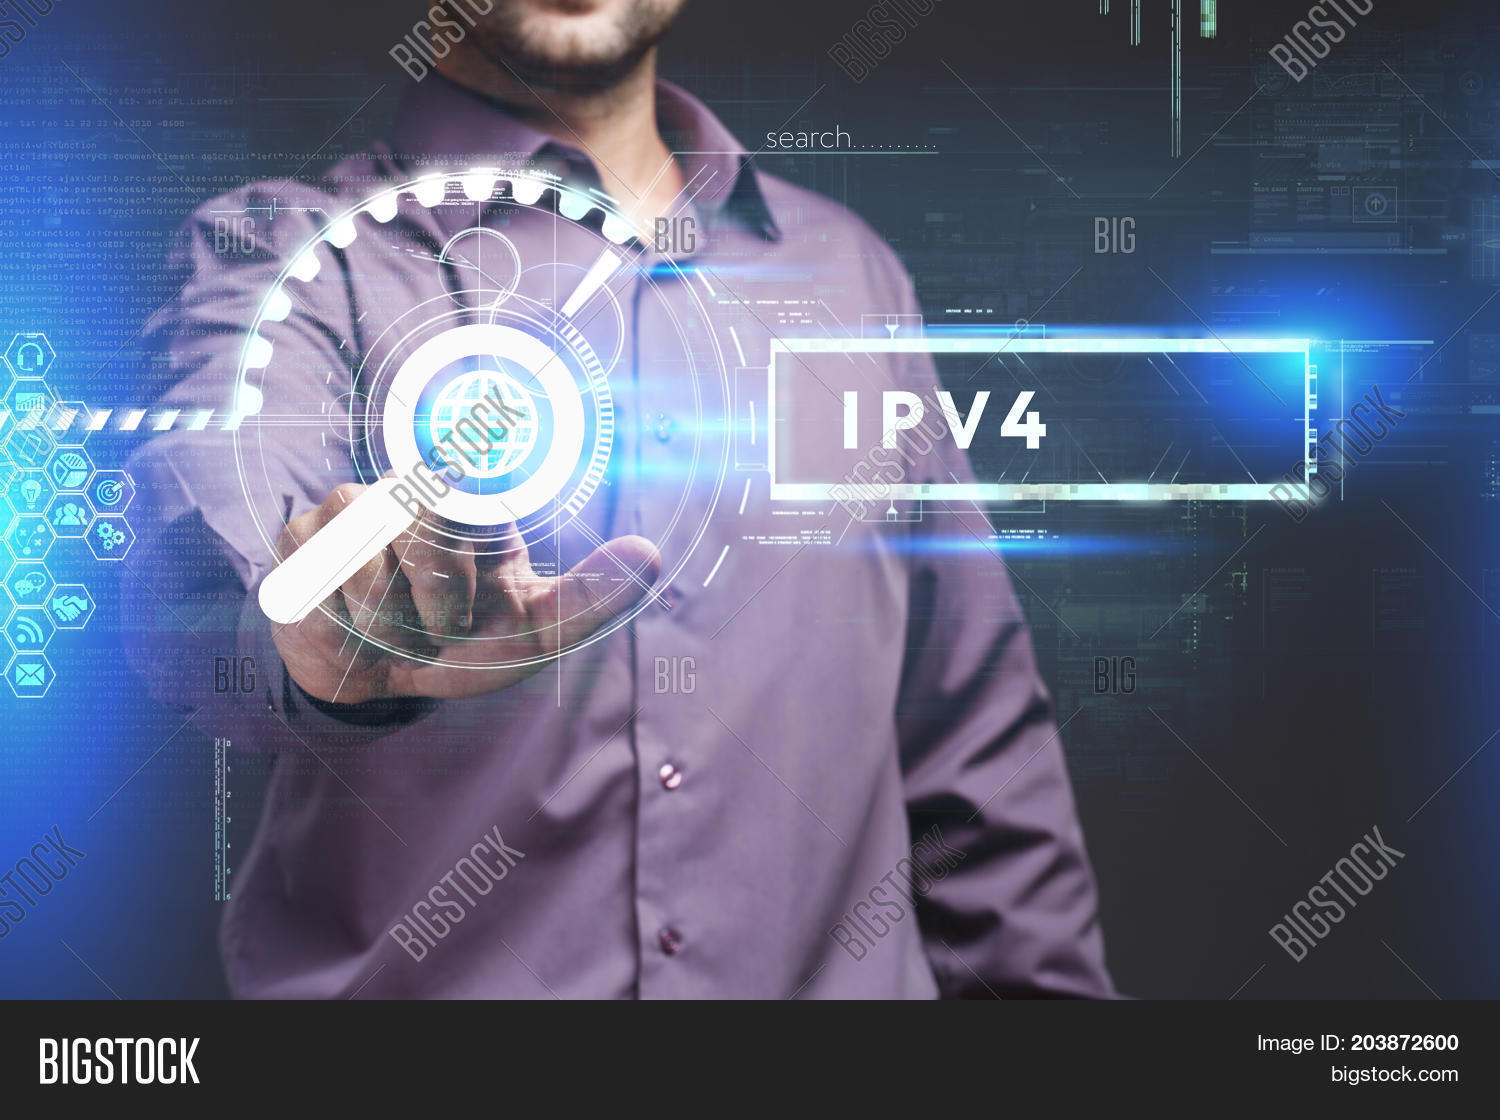 IPv4,accessibility,browsing,business,businessman,button,choosing,click,communication,concept,connection,data,design,device,digital,display,gadget,hand,icon,information,internet,iot,link,male,modern,navigation,network,networking,new,online,pointing,professional,push,screen,search,selecting,smart,software,tech,technology,web,website,wireless